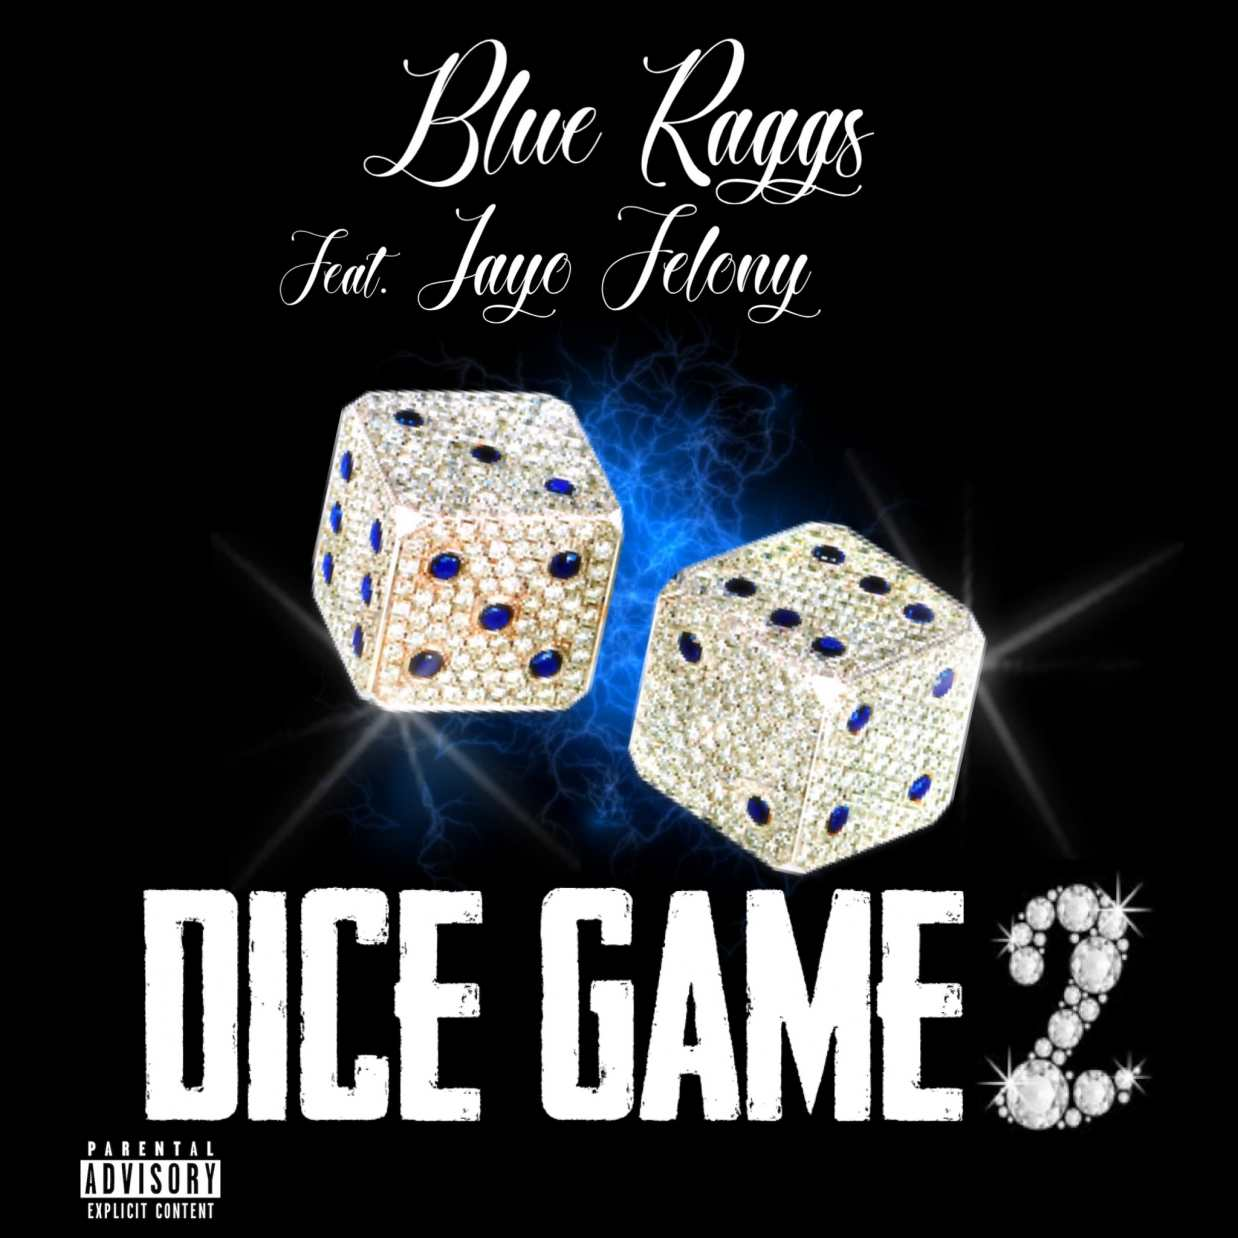 Dice Game Pt. 2 ft. Jayo Felony